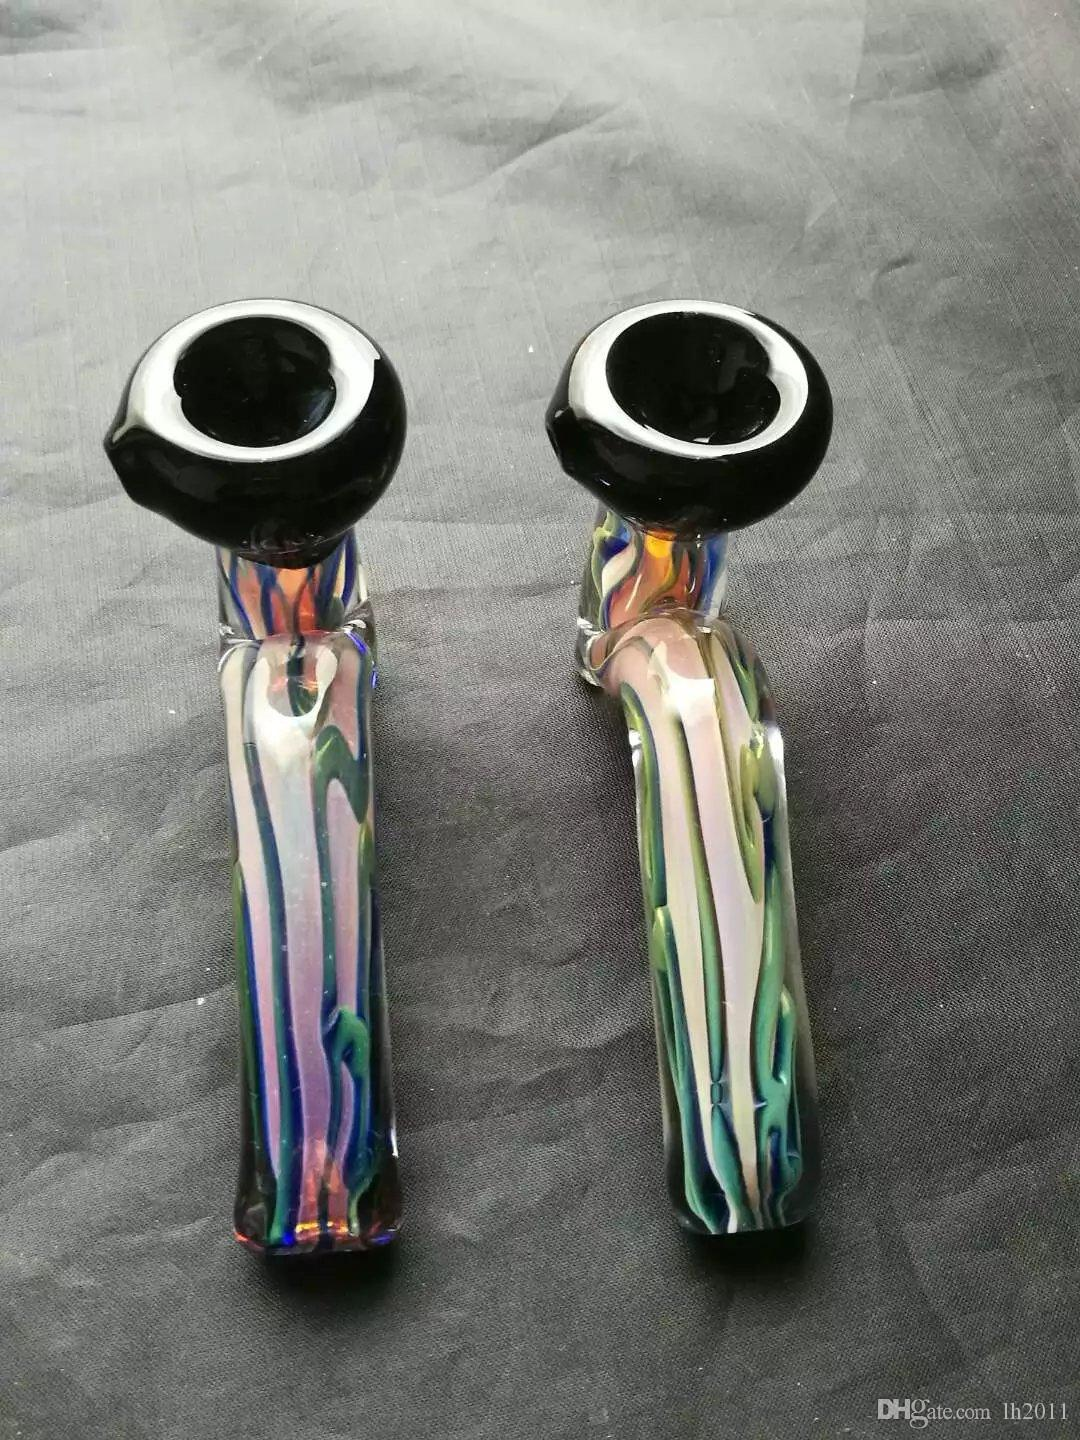 New color pipe , Wholesale Glass Bongs, Oil Burner Glass Water Pipes, Smoke Pipe Accessories